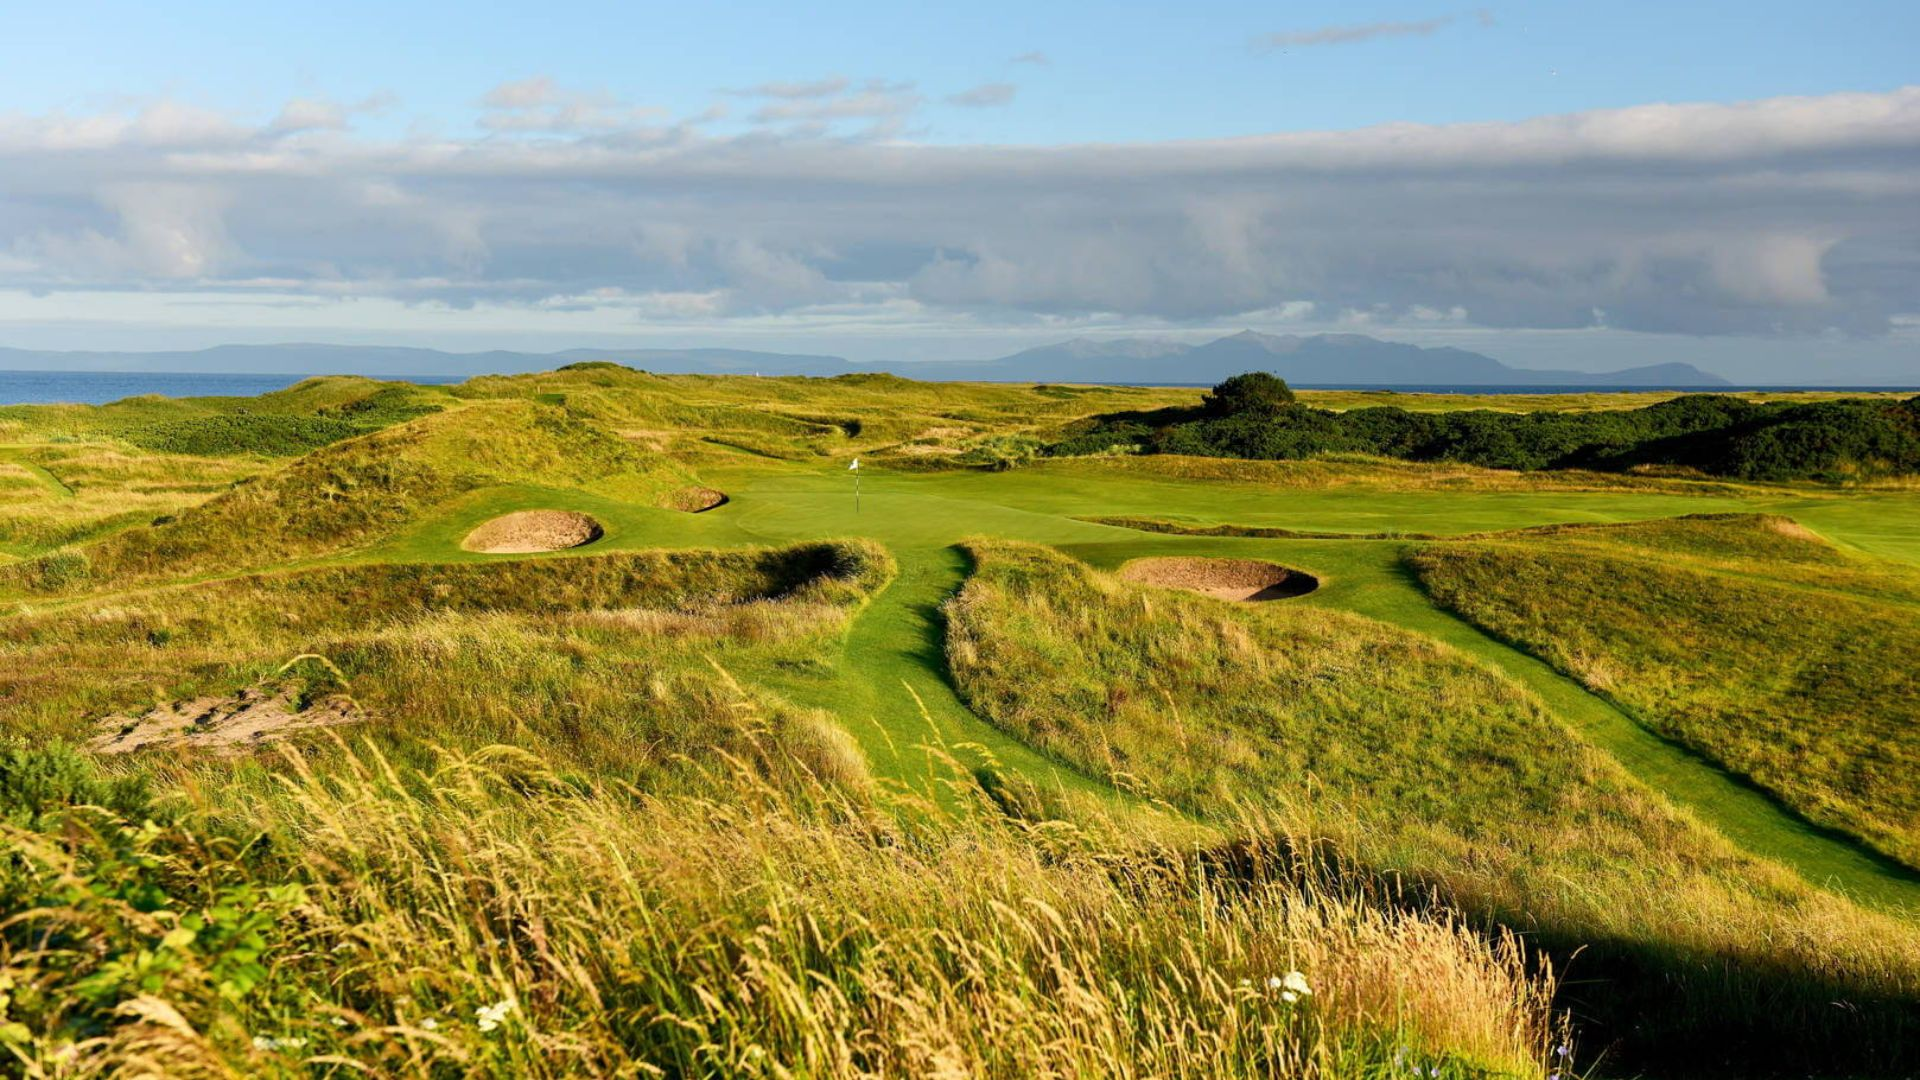 The 152nd Open Championship at Royal Troon in 2024 - 8th hole